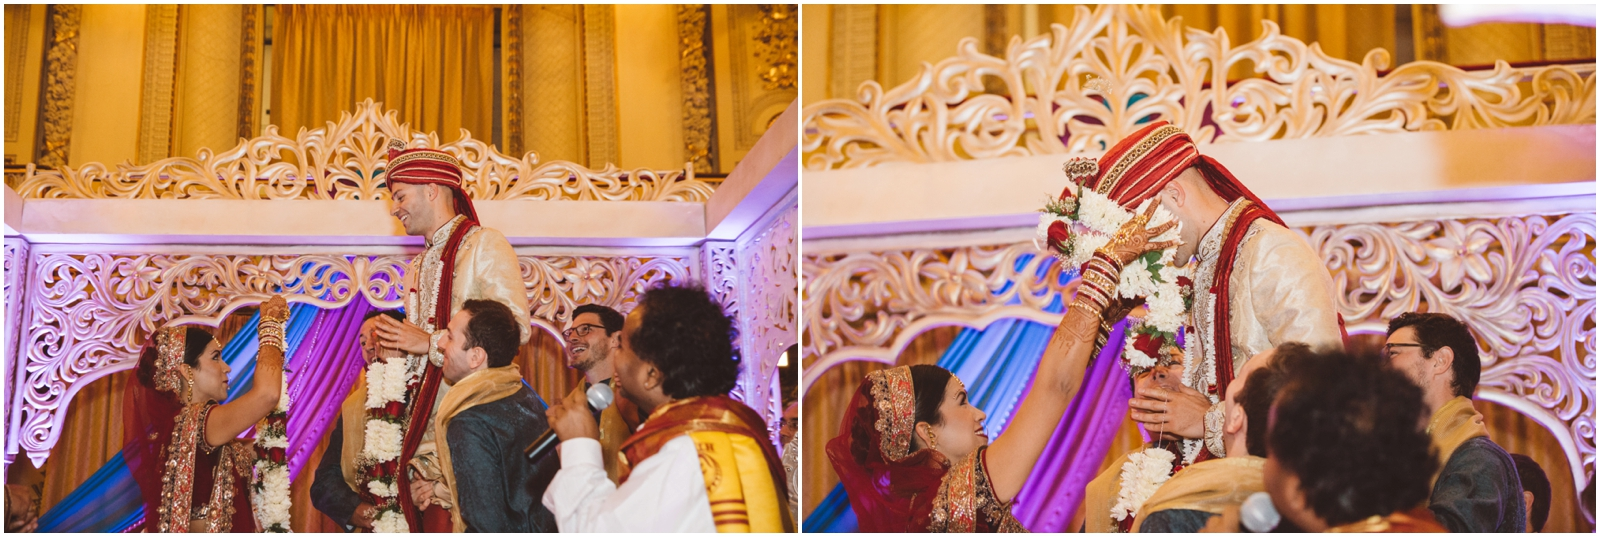 south_asian_wedding_photographer-39.jpg